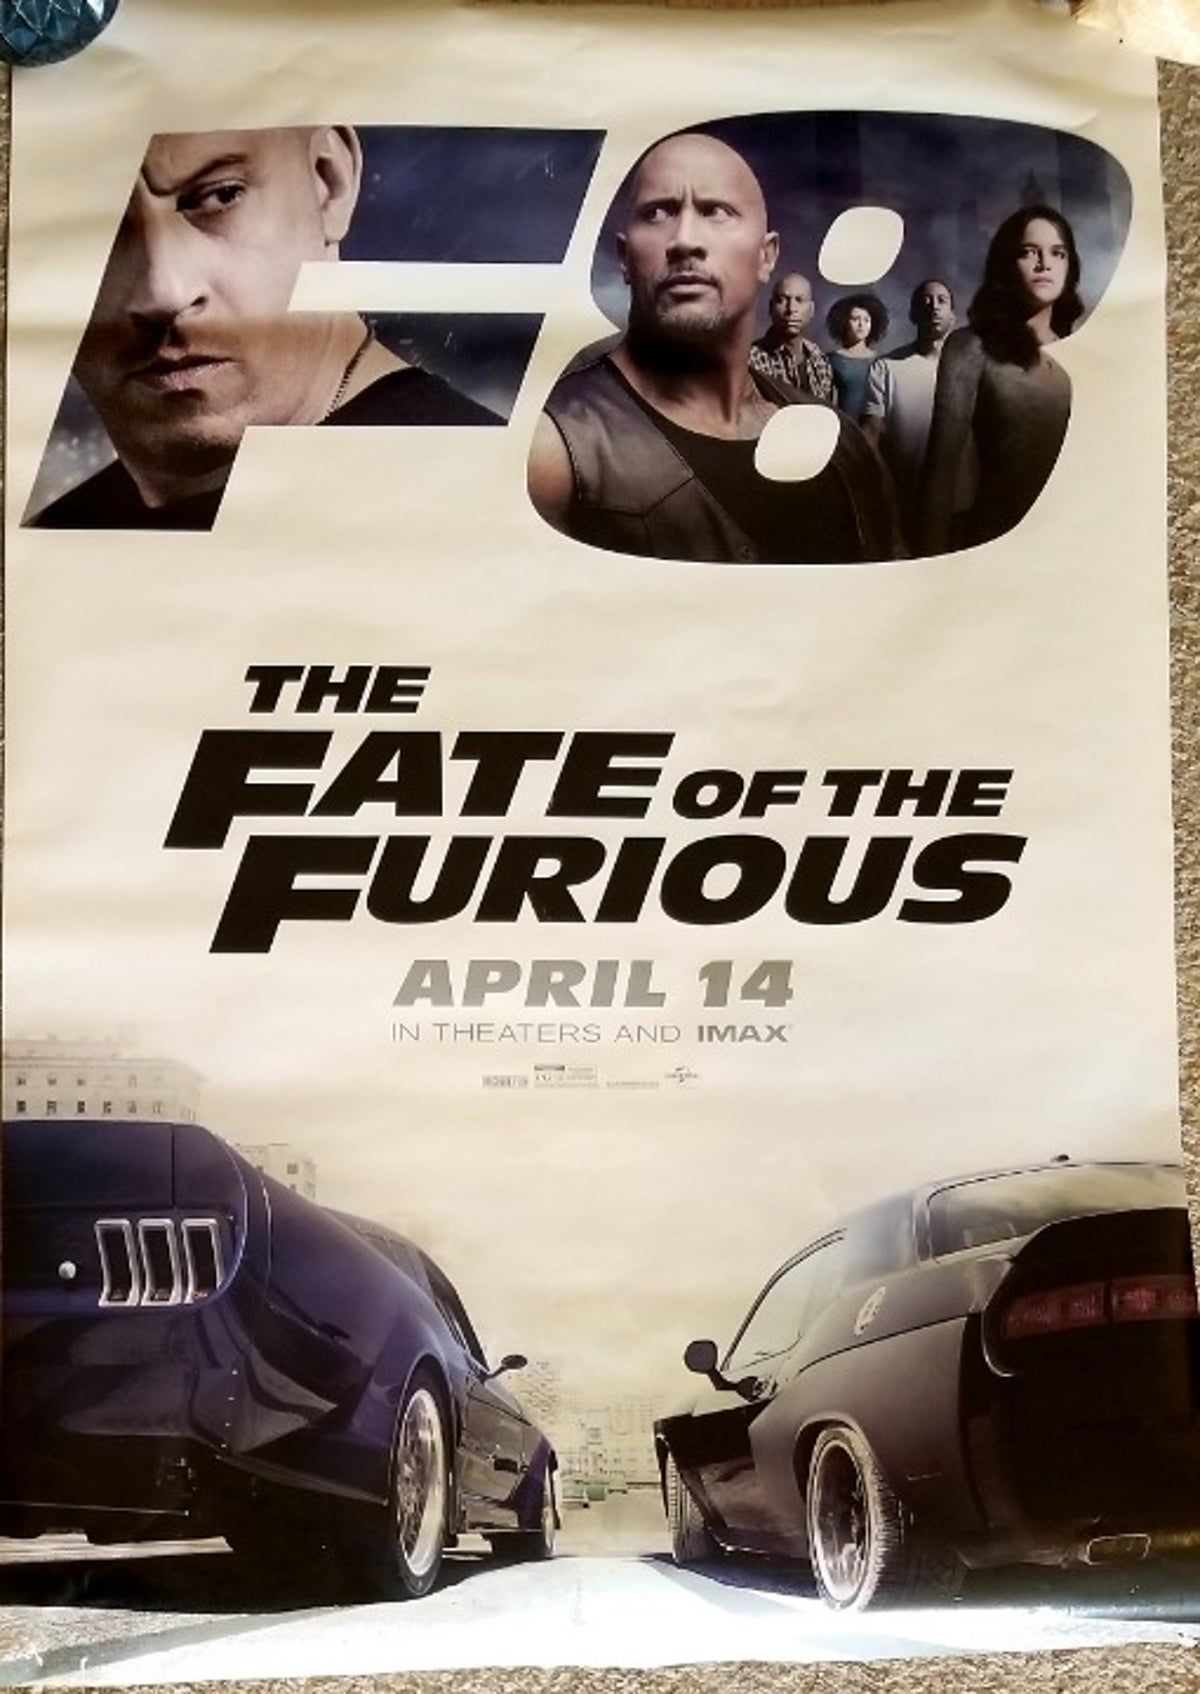 Fast And Furious Movie Poster F8 In 2020 Furious Movie Fast And Furious Movie Posters